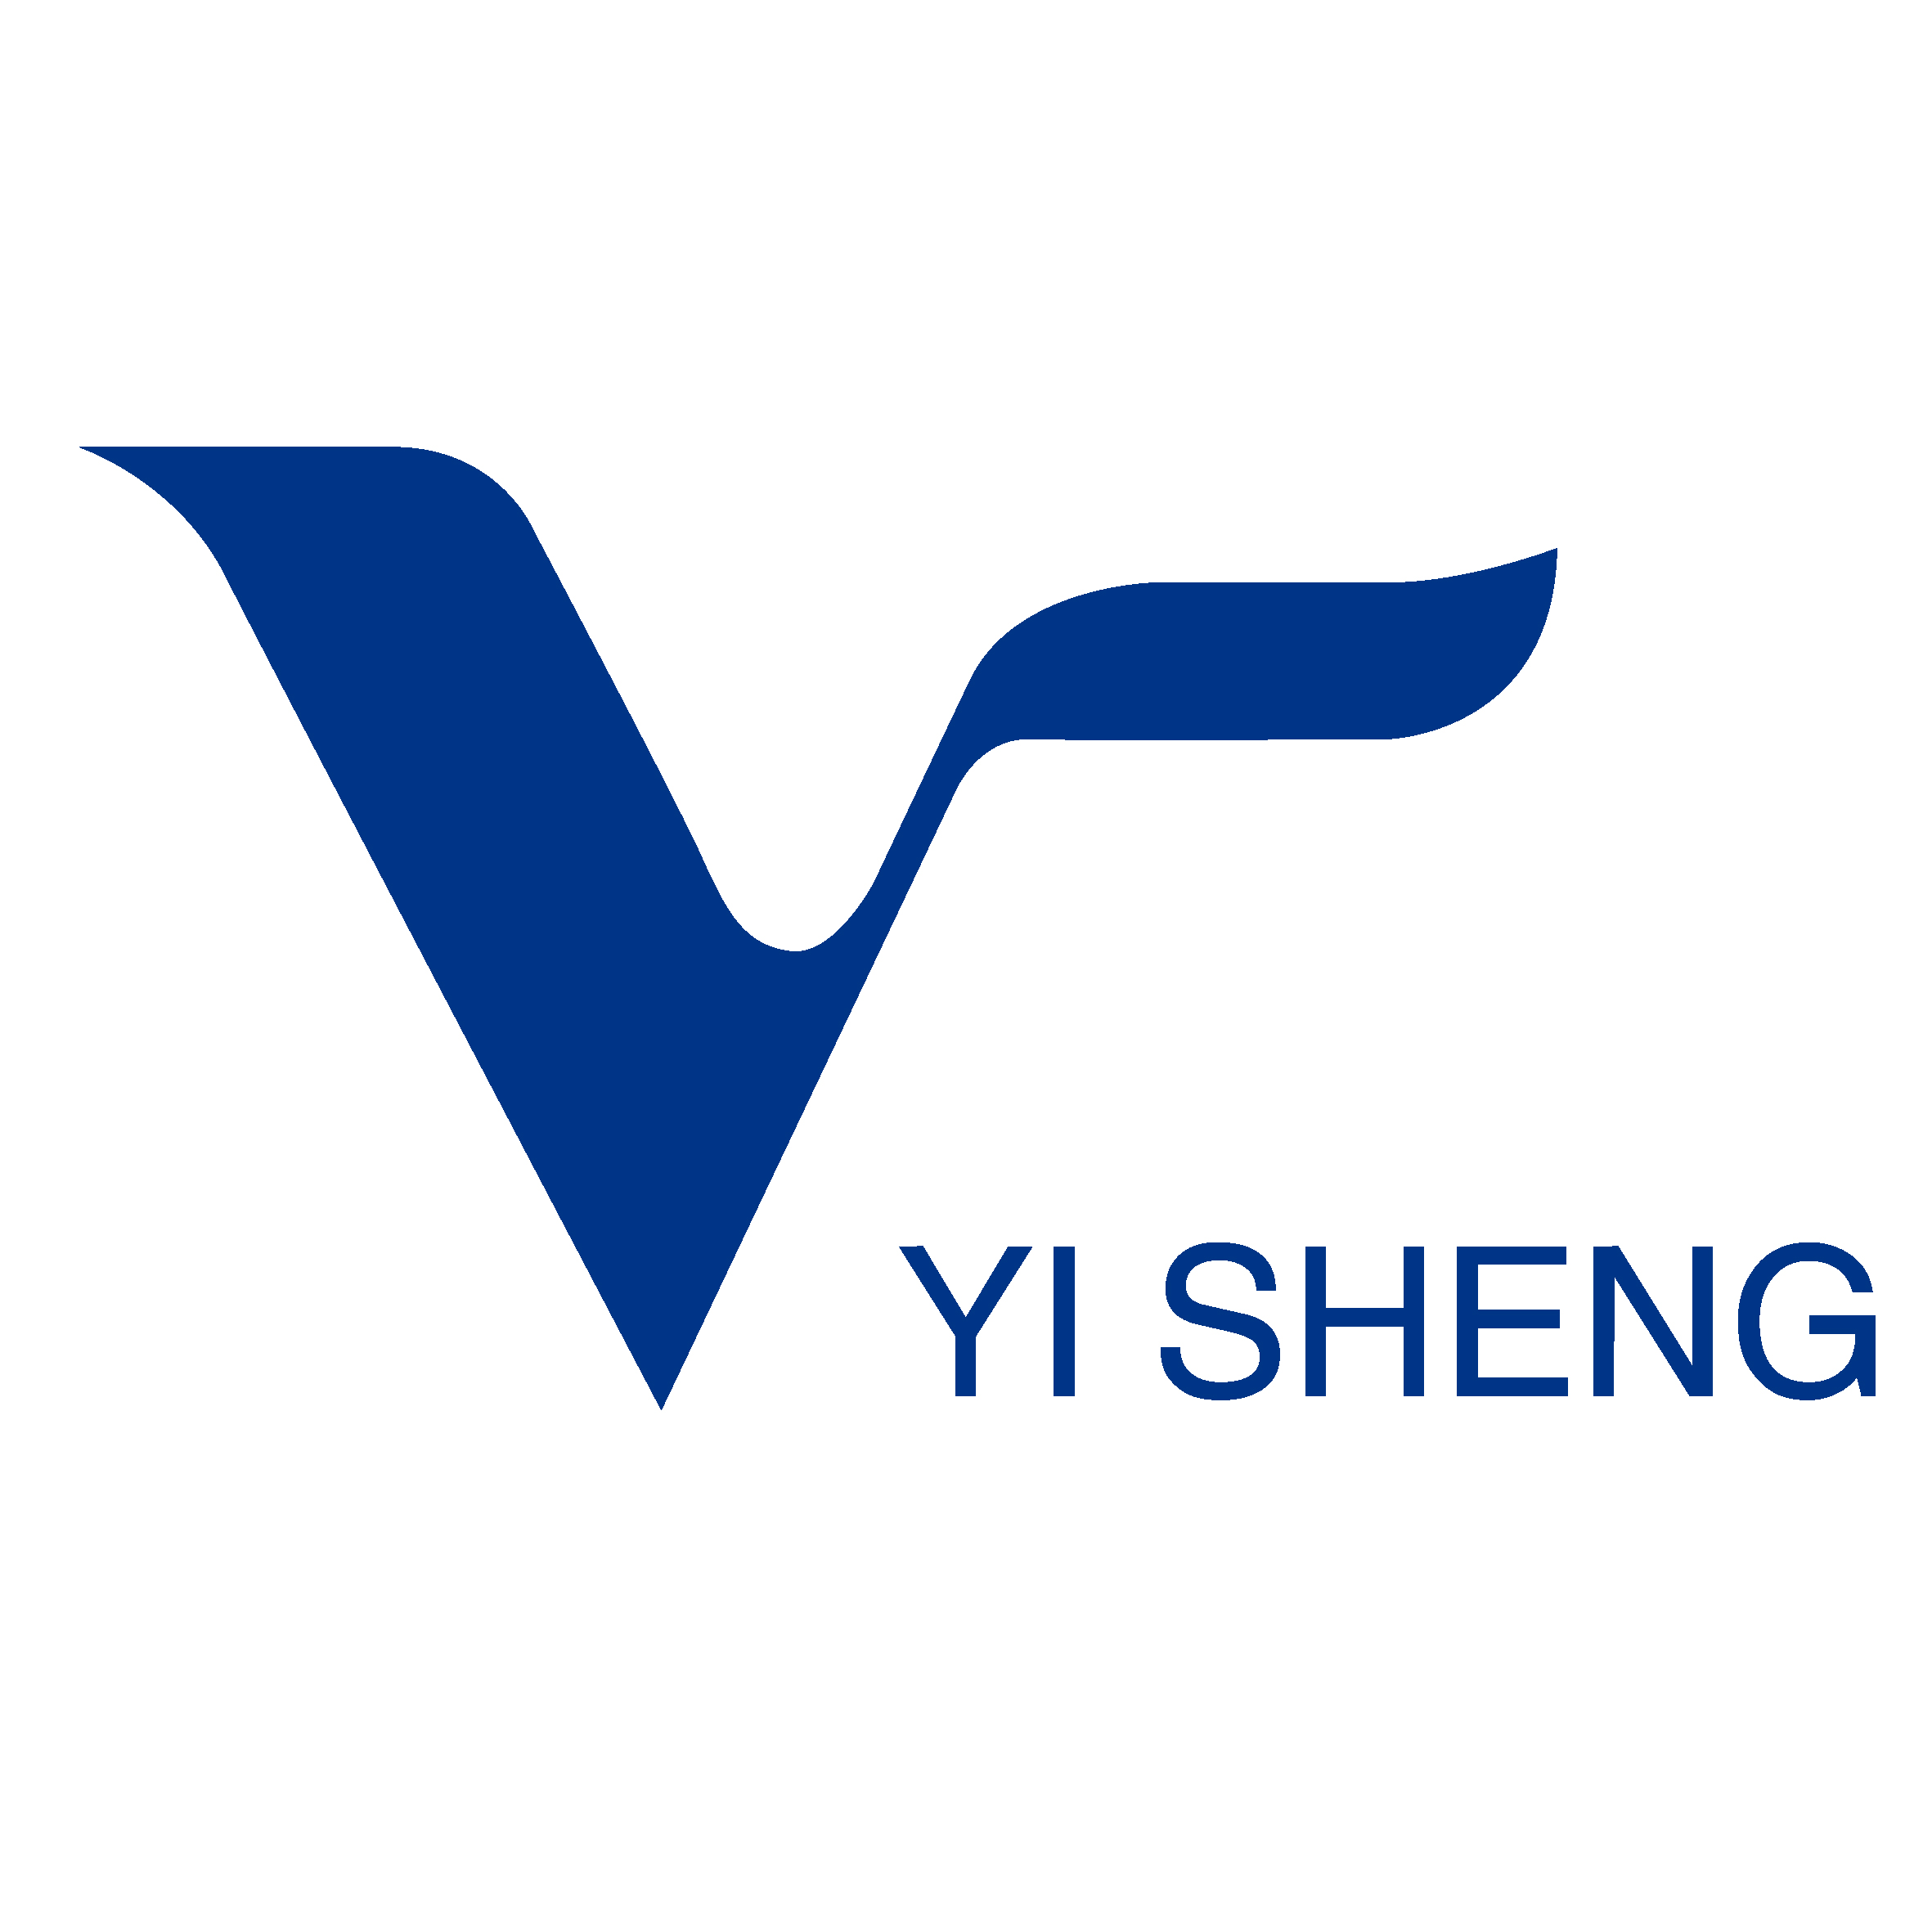 CHANGSHU YISHENG TEXTILES CO., LTD